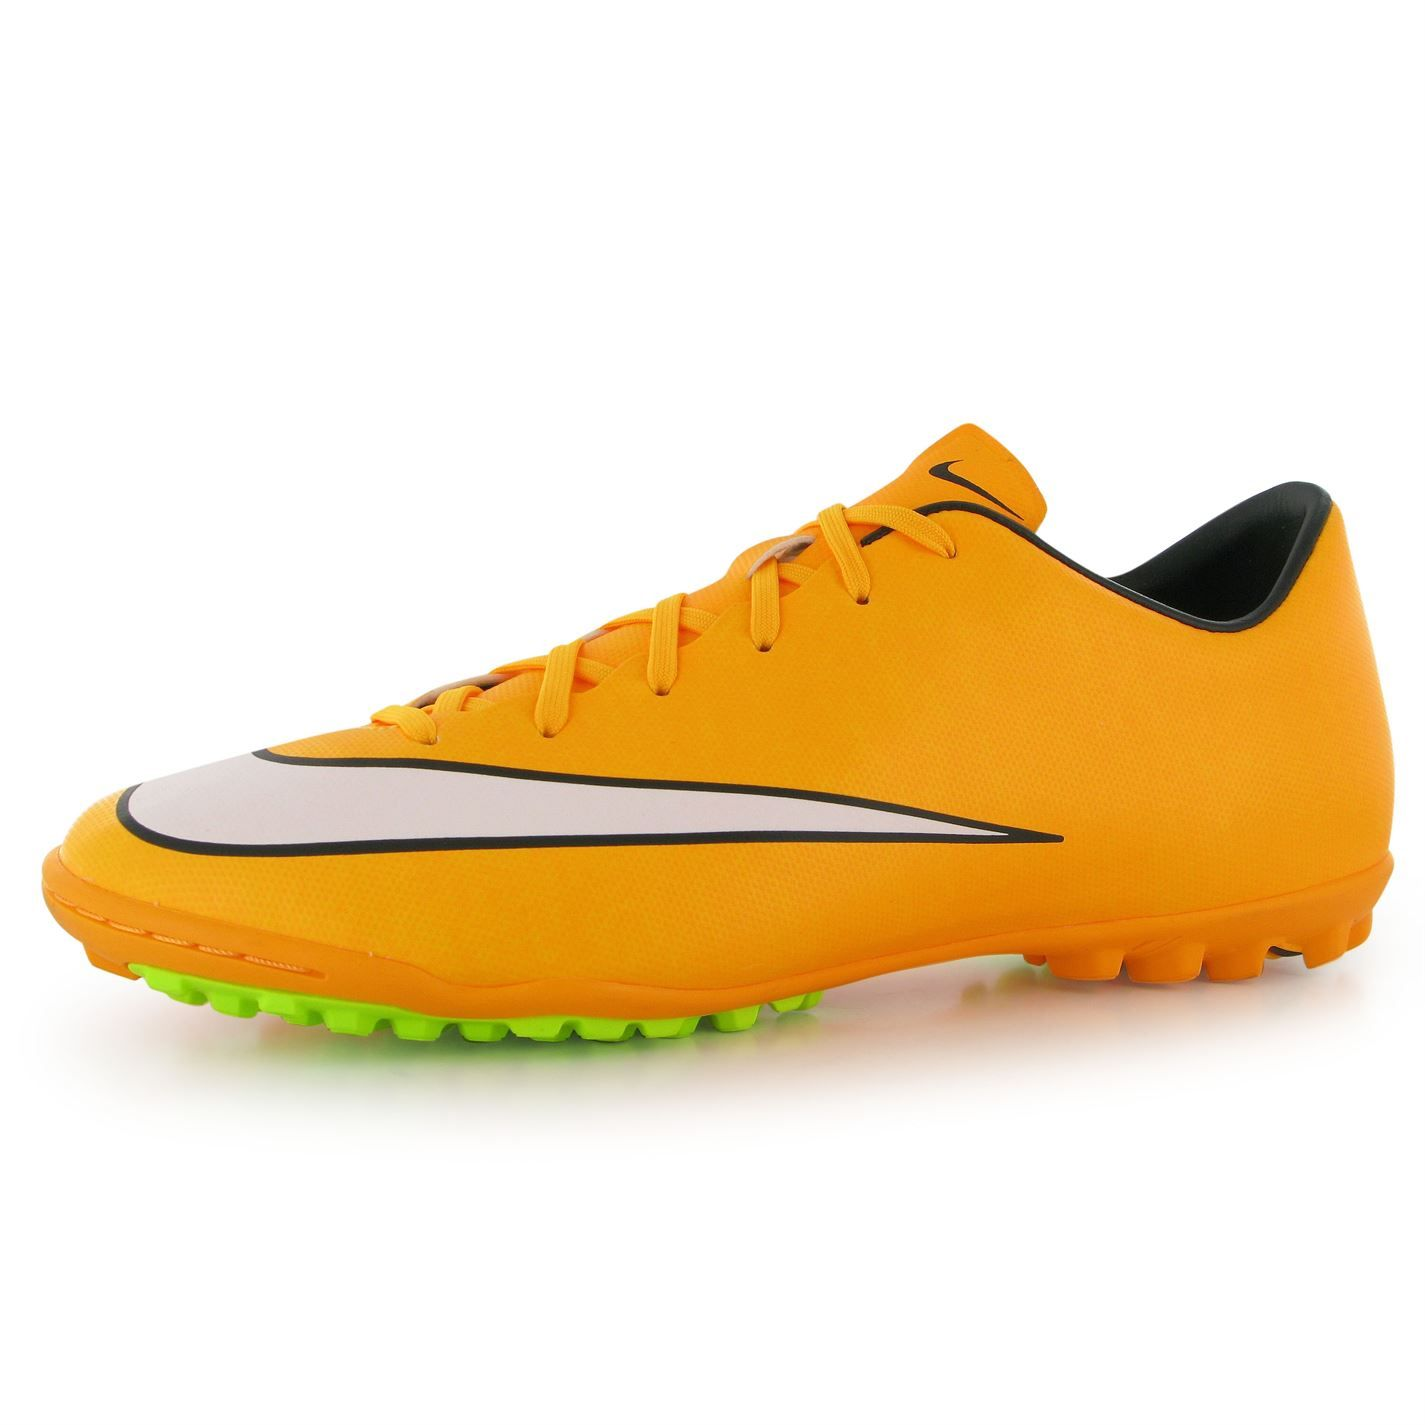 Nike | Nike Mercurial Victory Childrens Astro Turf Trainers | Kids Nike  Mercurial Vapor Football Boo